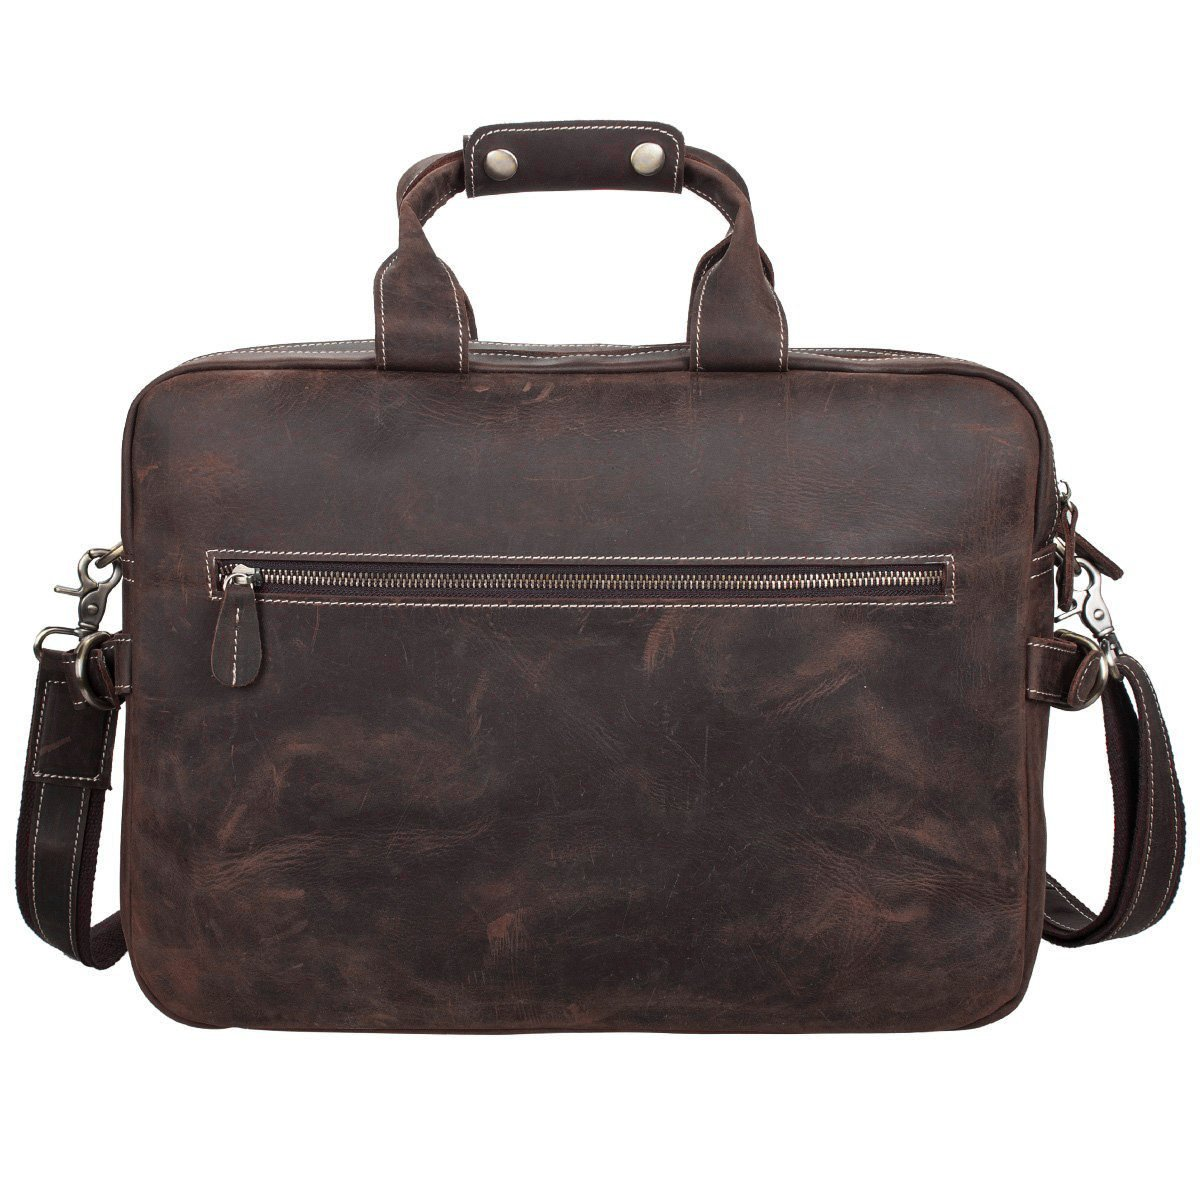 S-ZONE Crazy Horse Leather Shoulder Briefcase for 16 Inch Laptop Bag by S-ZONE (Image #5)